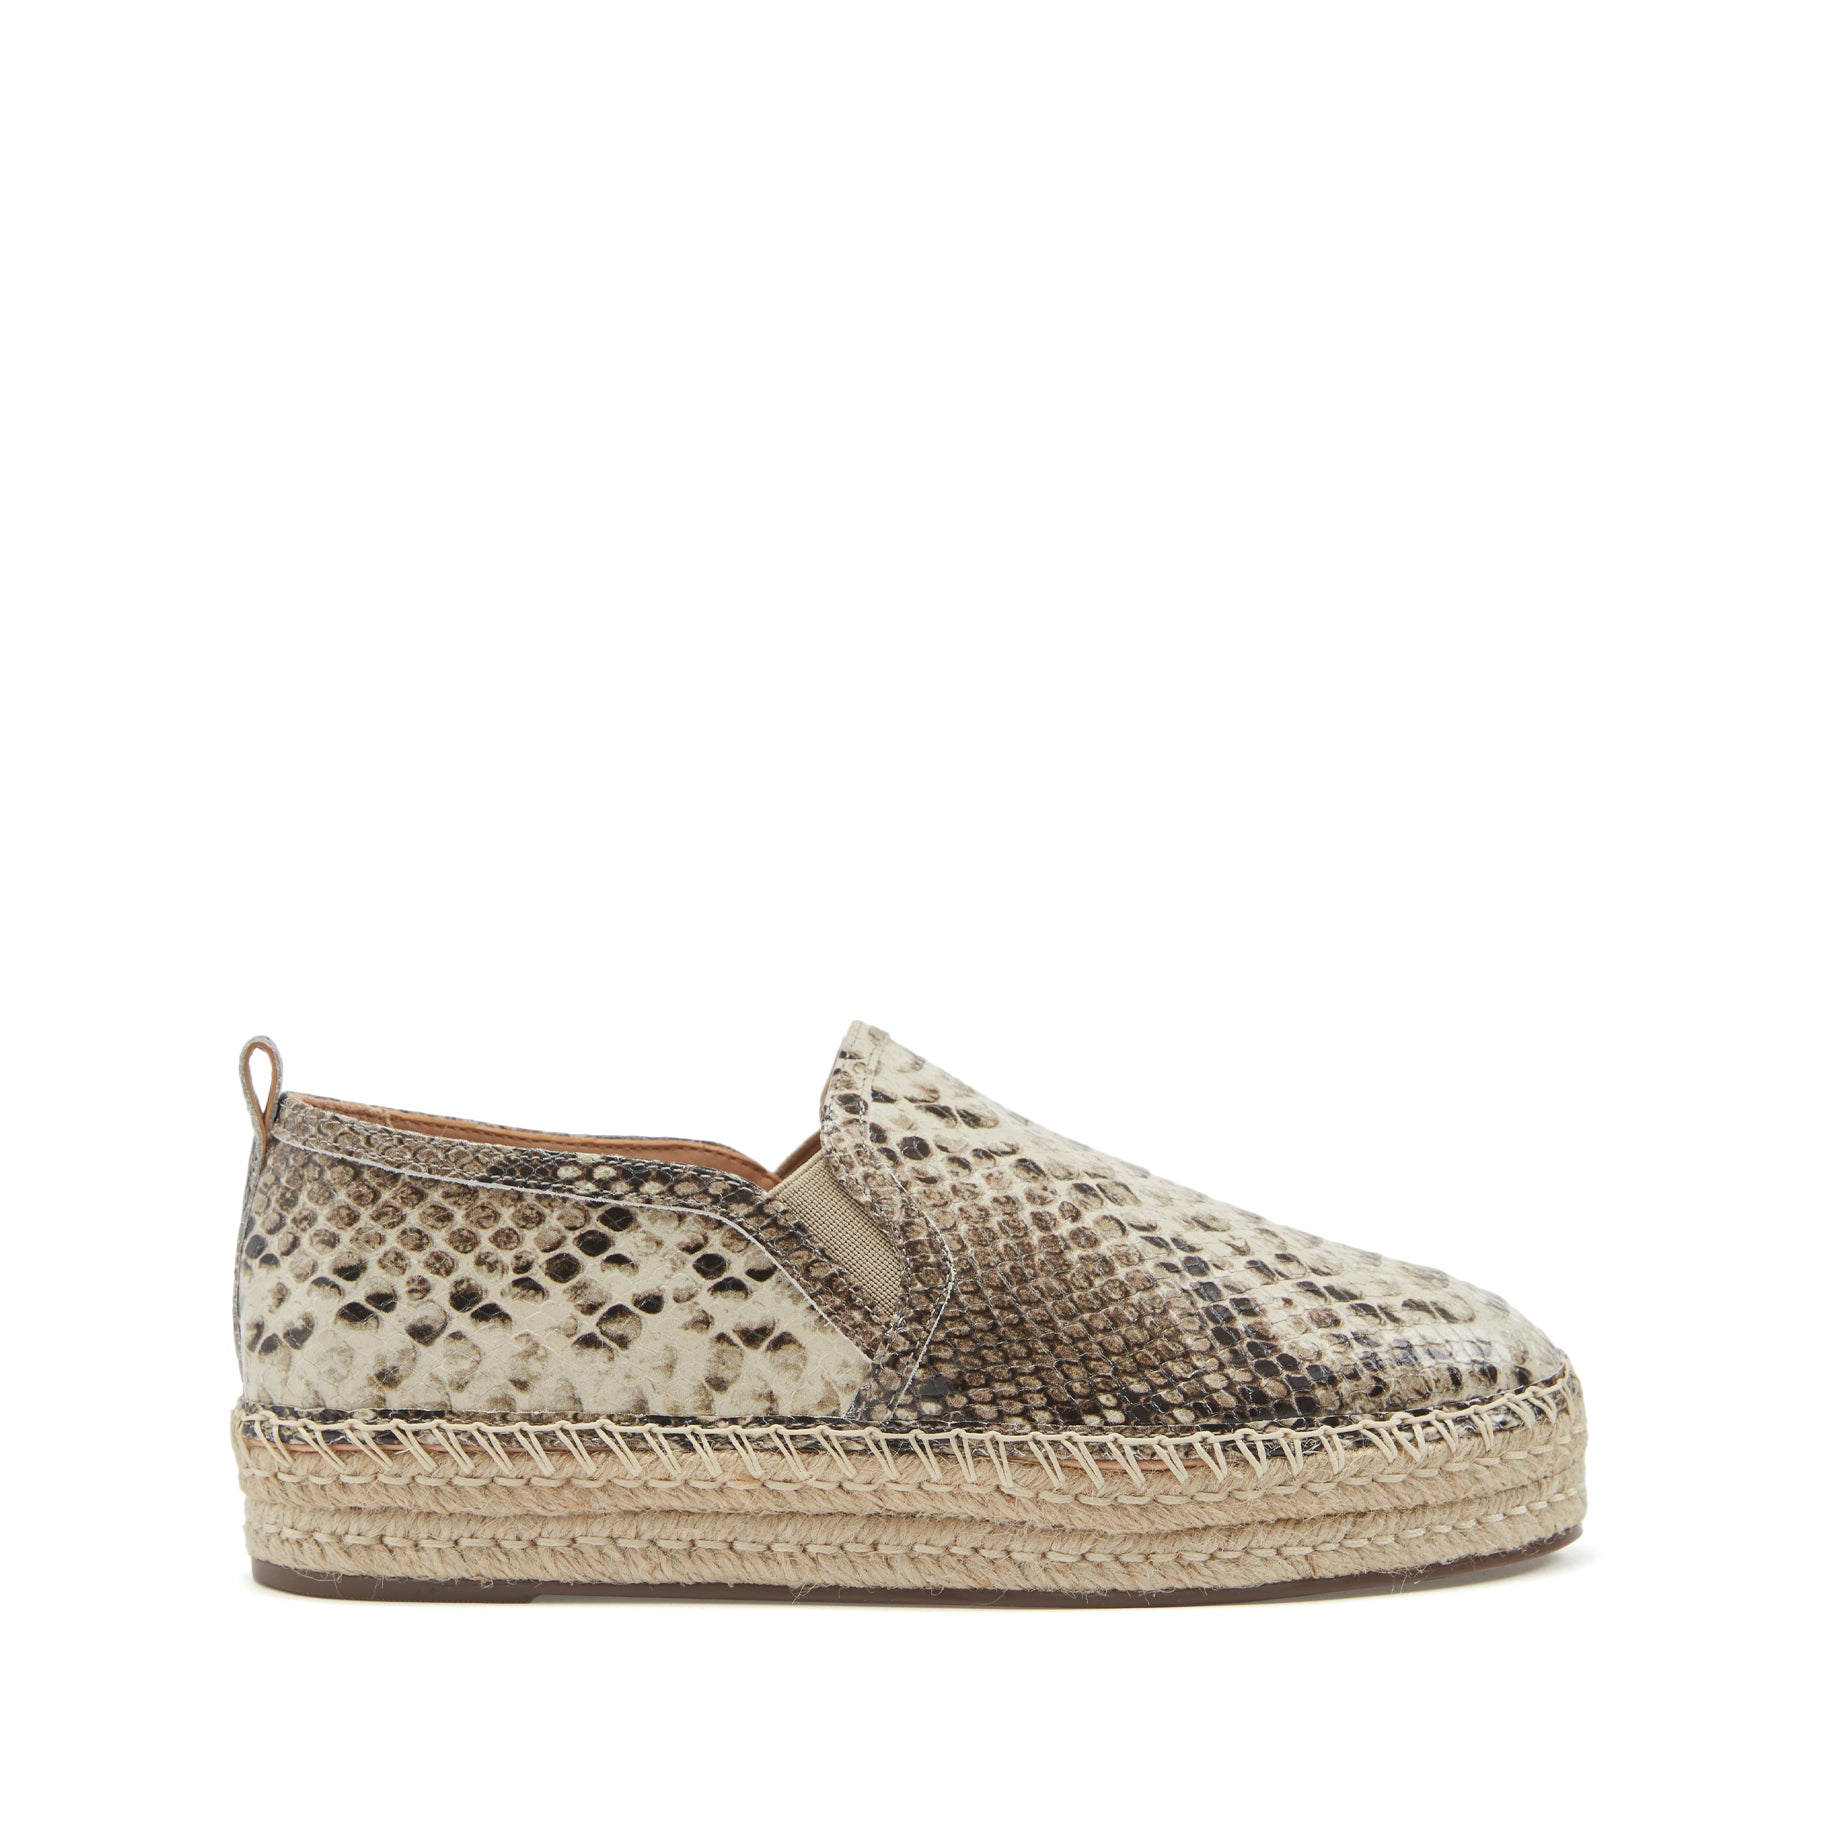 Fadia Flats Espadrille Pearl Snake Snake Embossed Leather